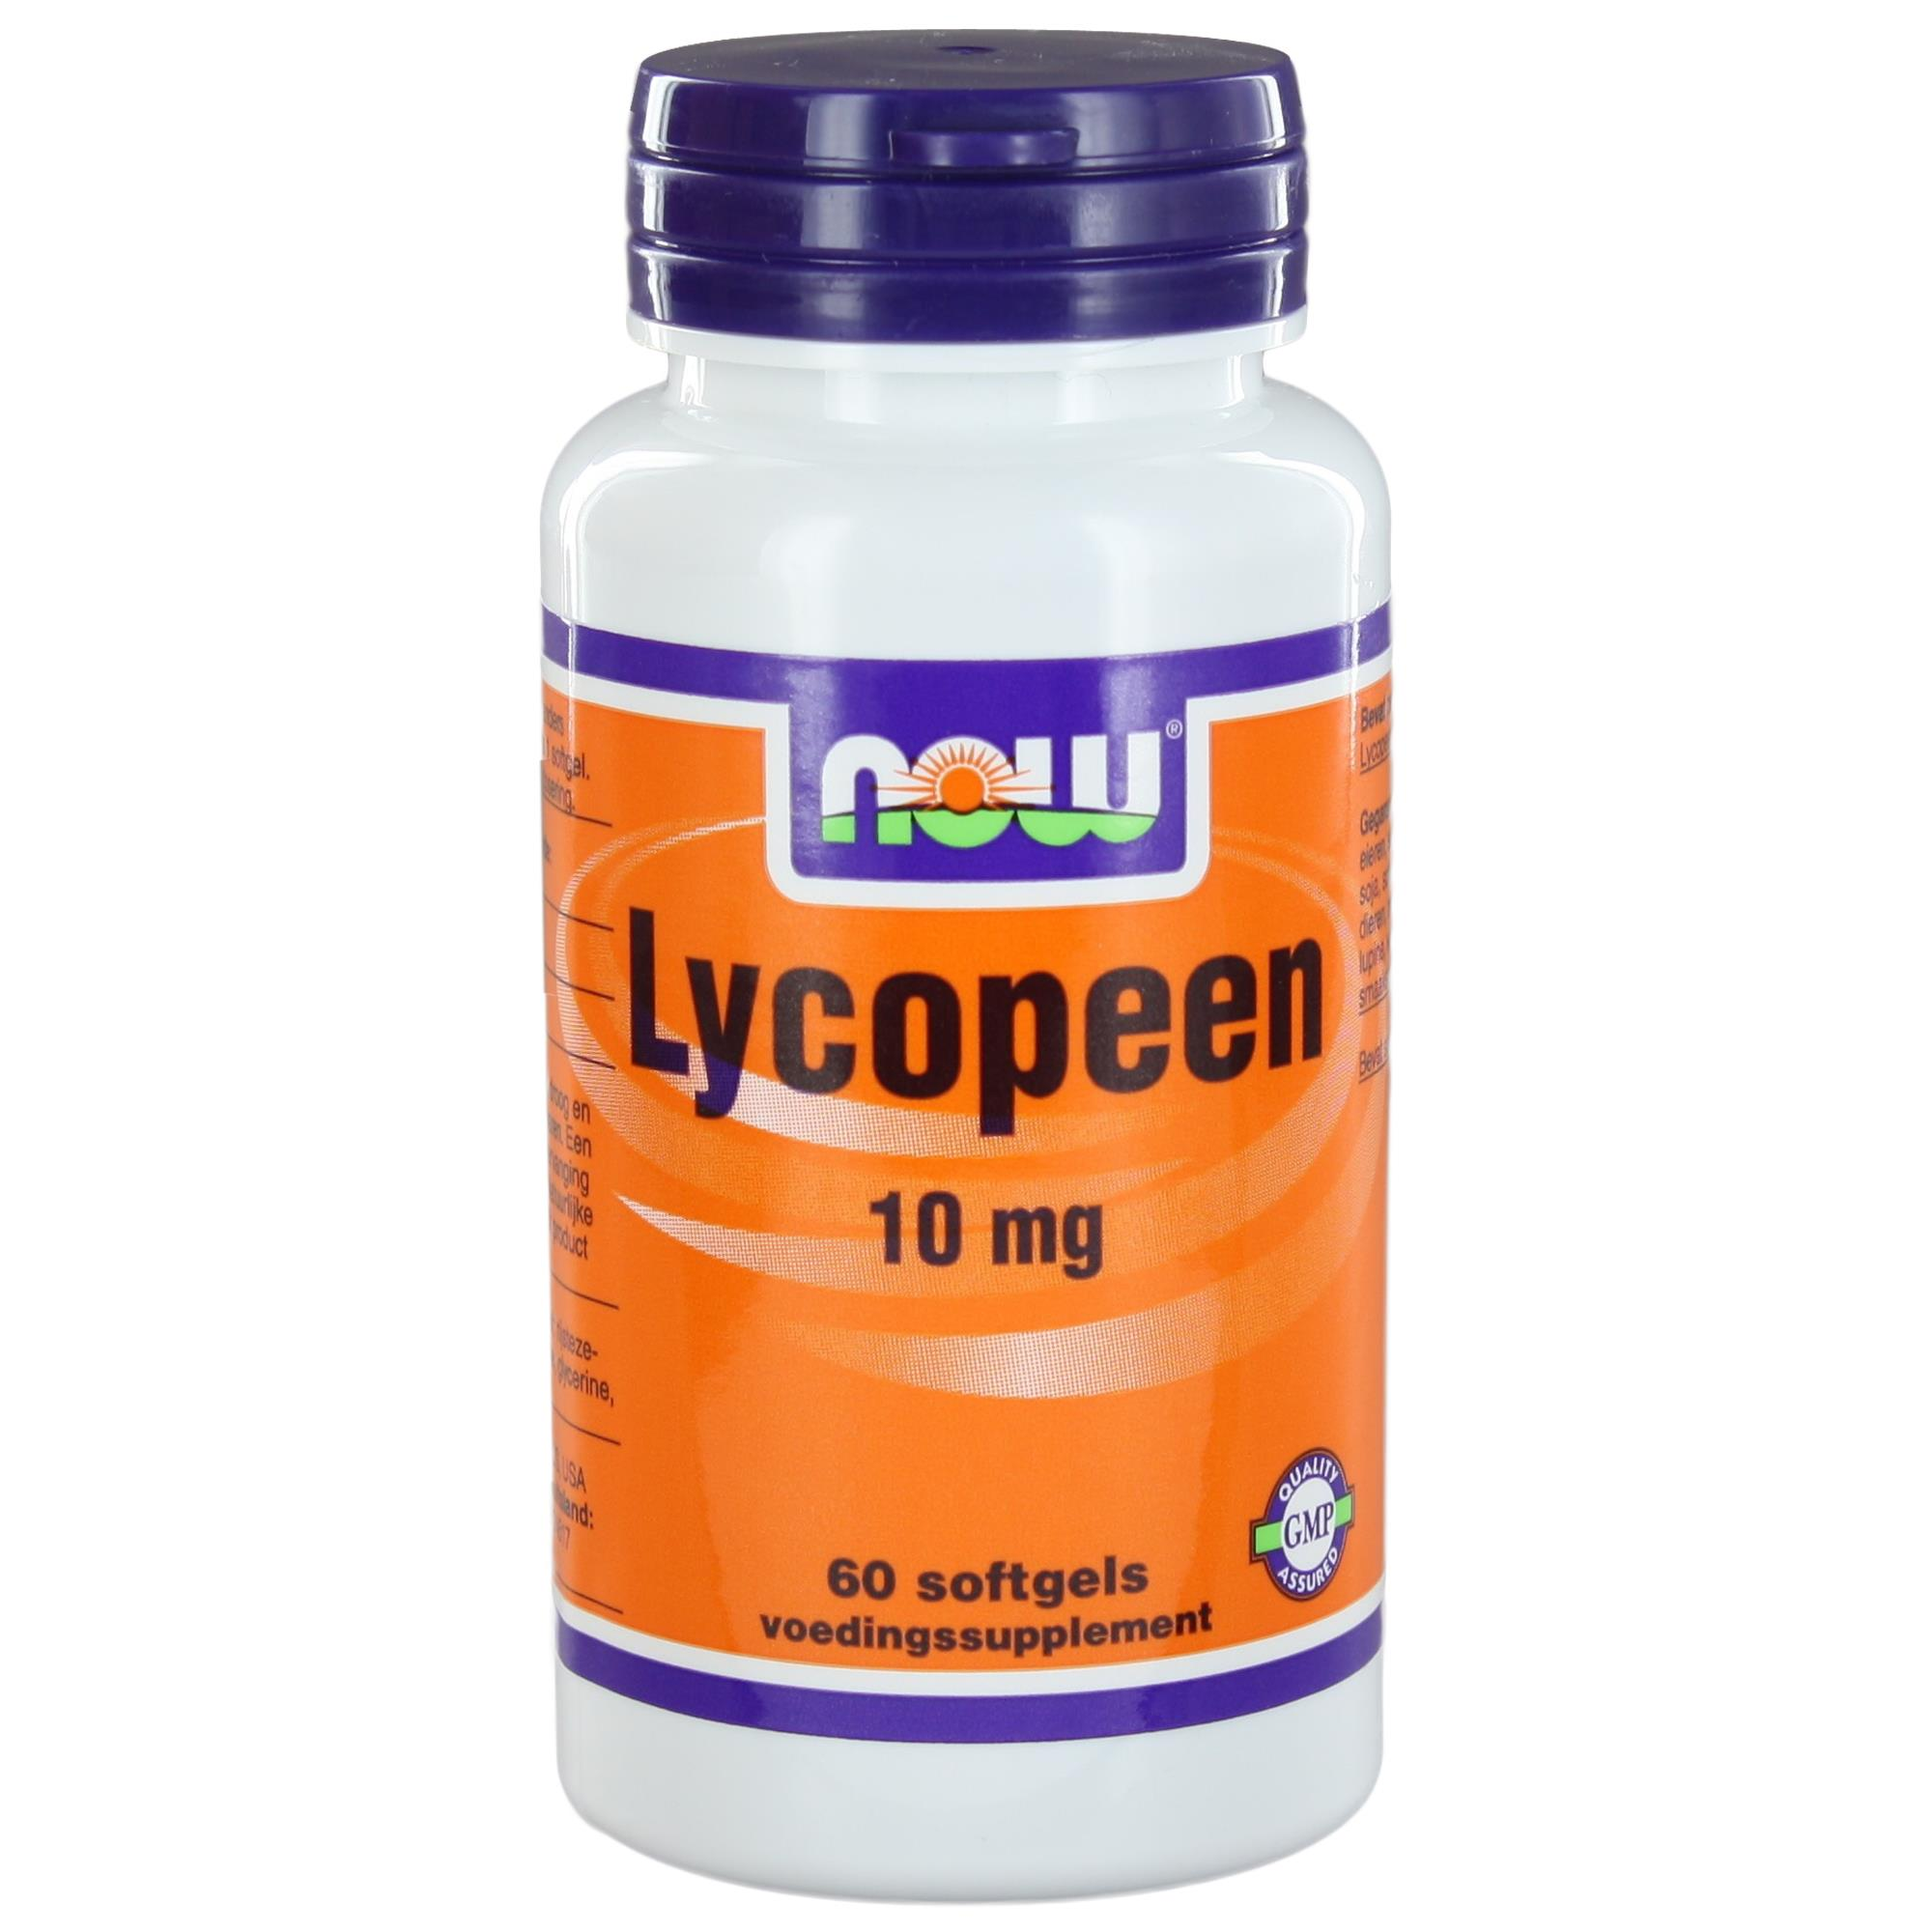 img 2110 - Lycopeen 10 mg (60 softgels) - NOW Foods